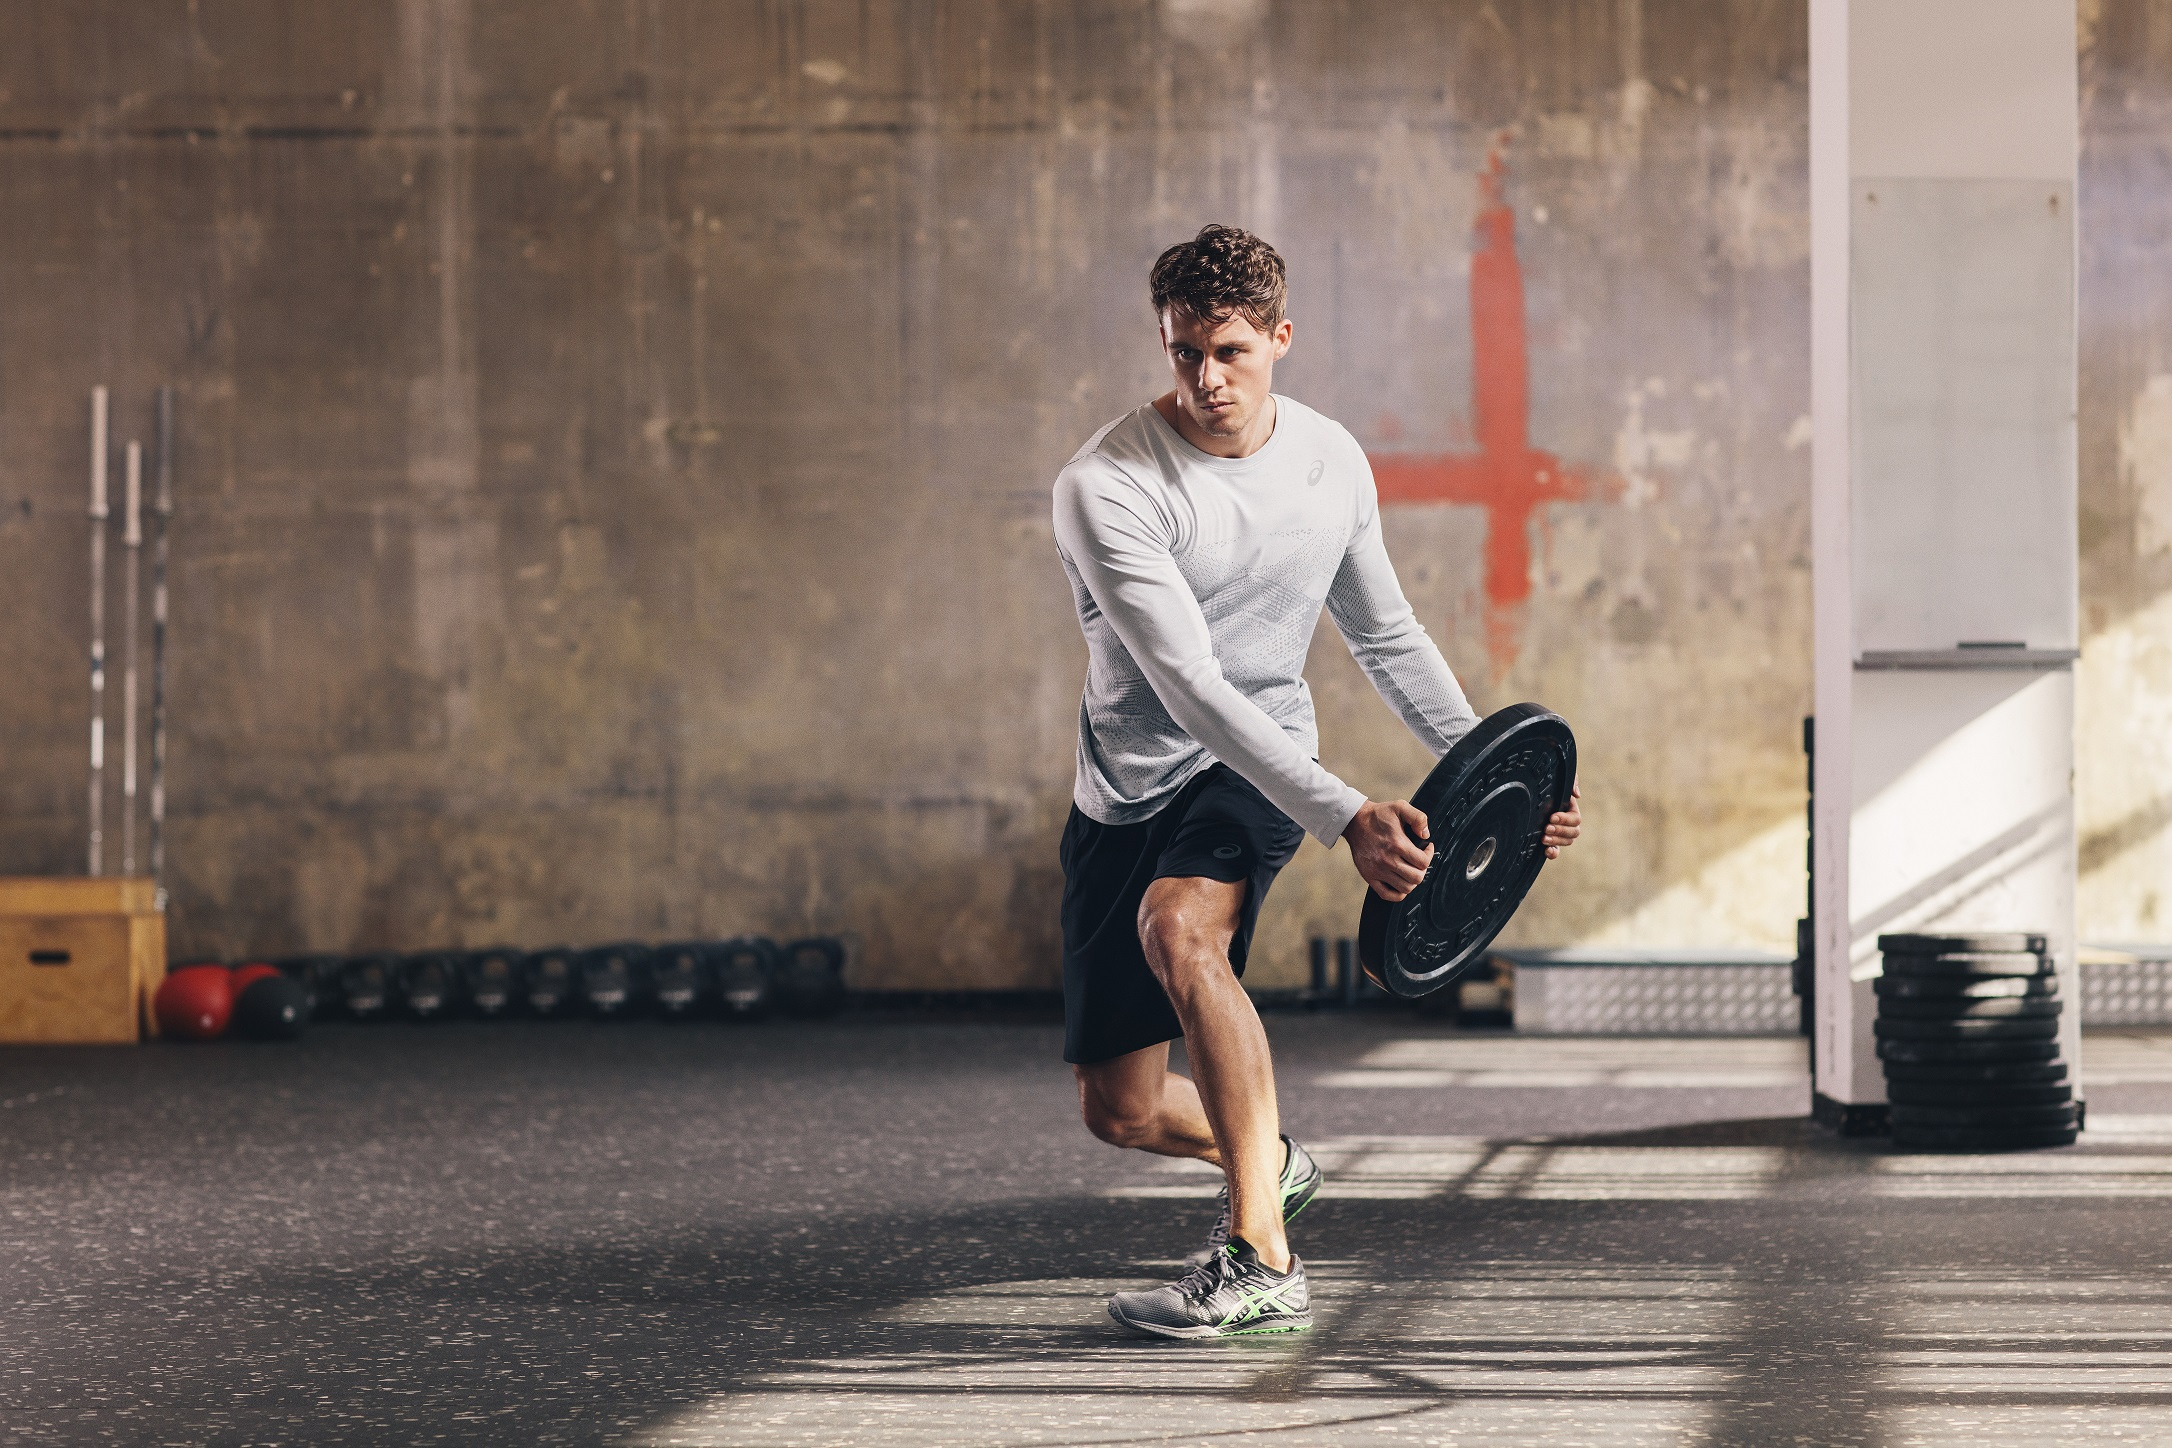 GET FITTER IN 15 SECONDS WITH ASICS